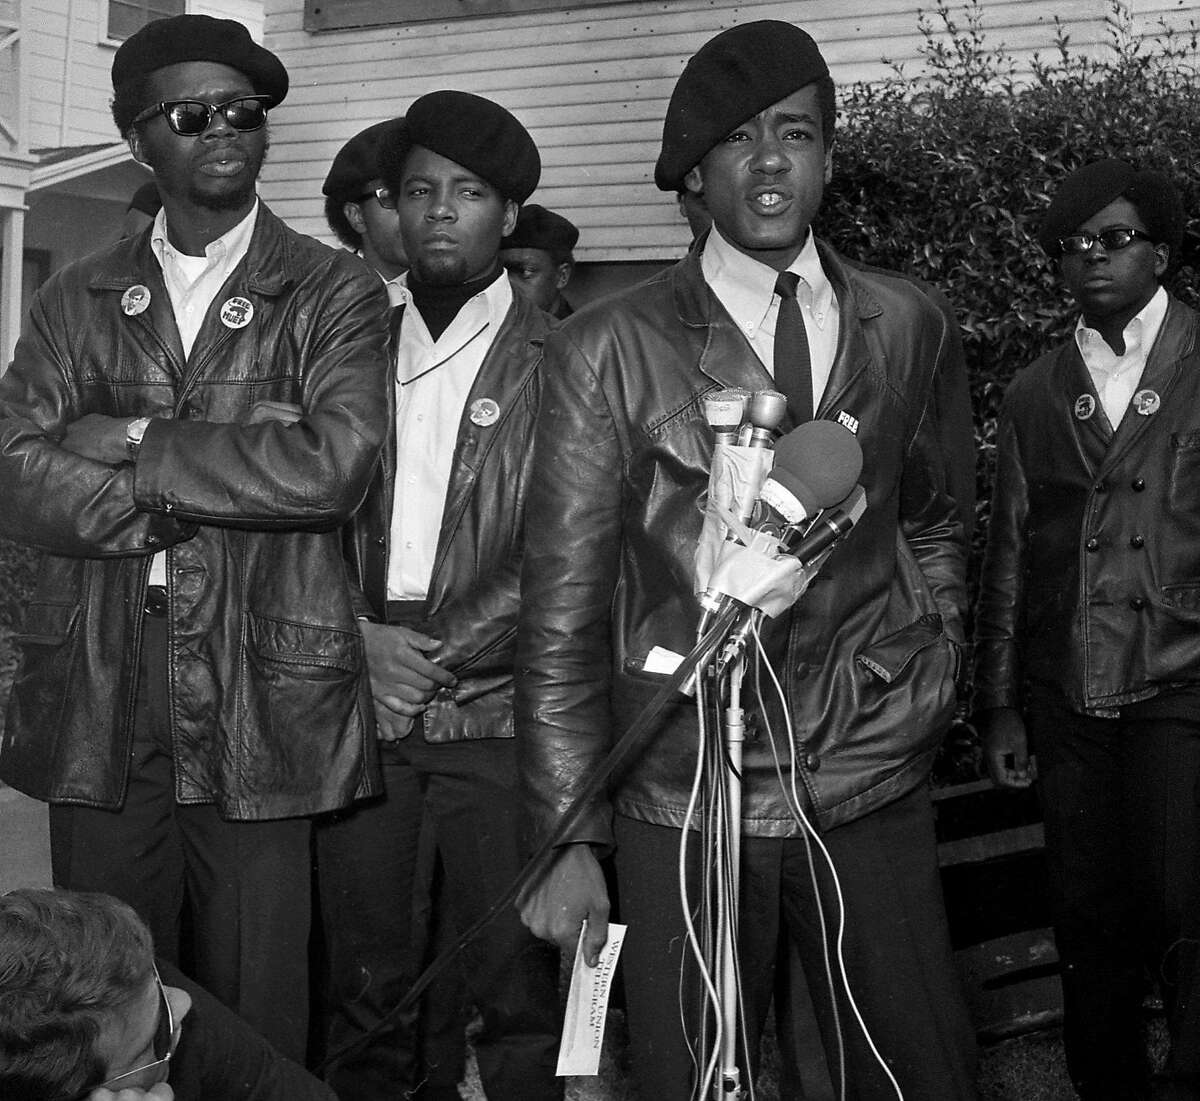 The funeral of Black Panther Bobby Hutton 04/17/1968 Bobby Seale Speaks at the scene of the shoot out.